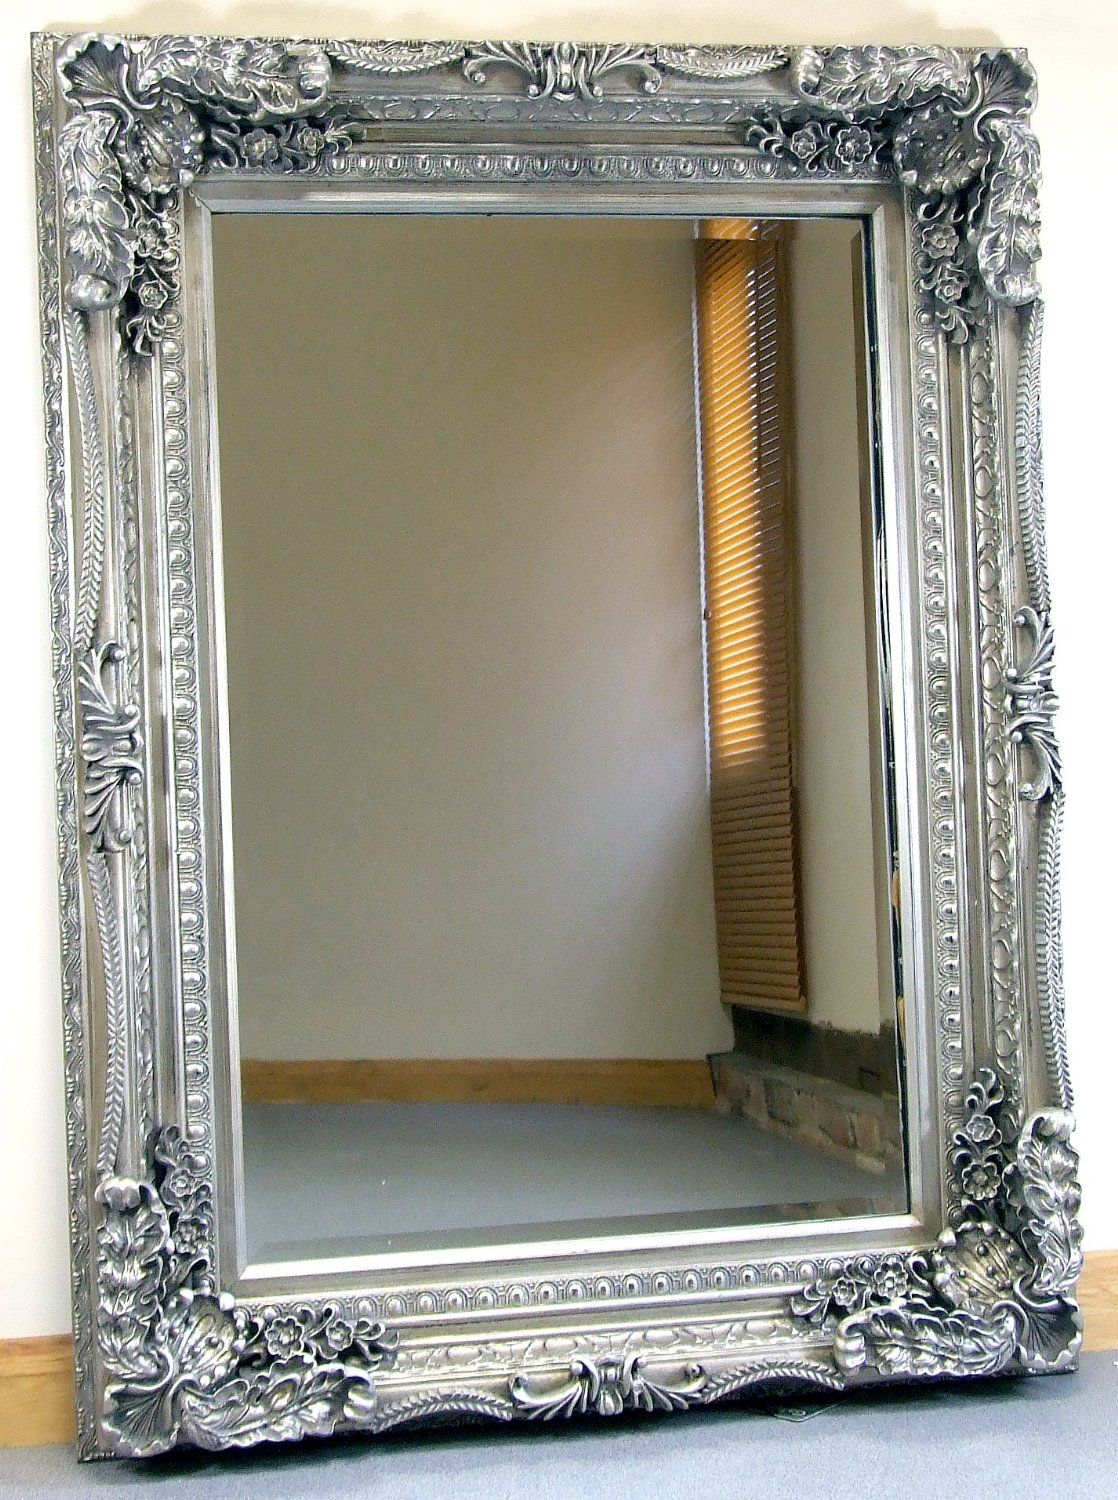 Etonnant Carved Louis Silver Ornate French Frame Wall / Over Mantle Mirror   35in X  47in: